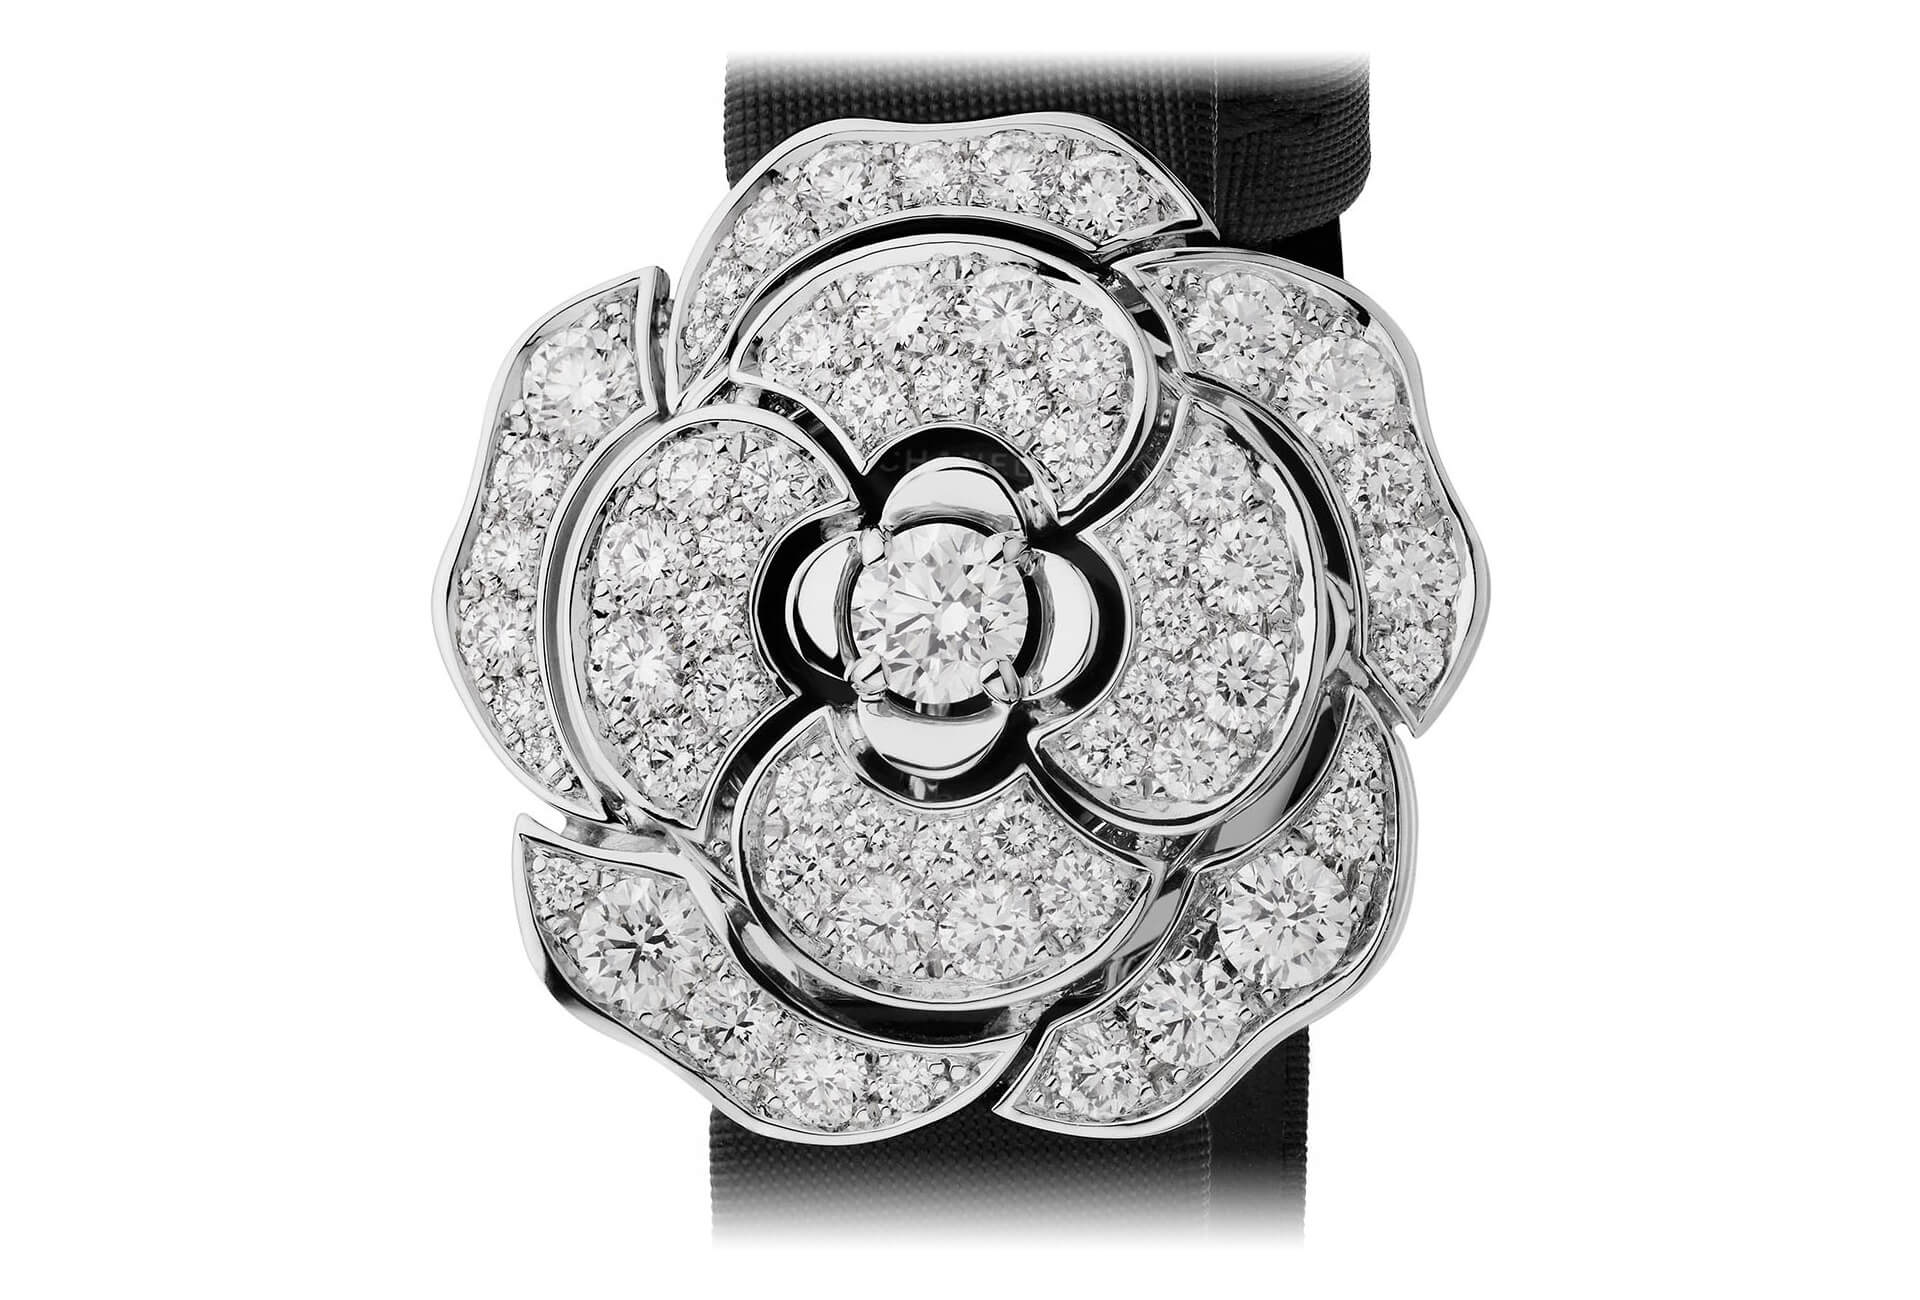 c71dd01736bd2b Ladies' watches add beauty and glamour to the Grand Prix d ...